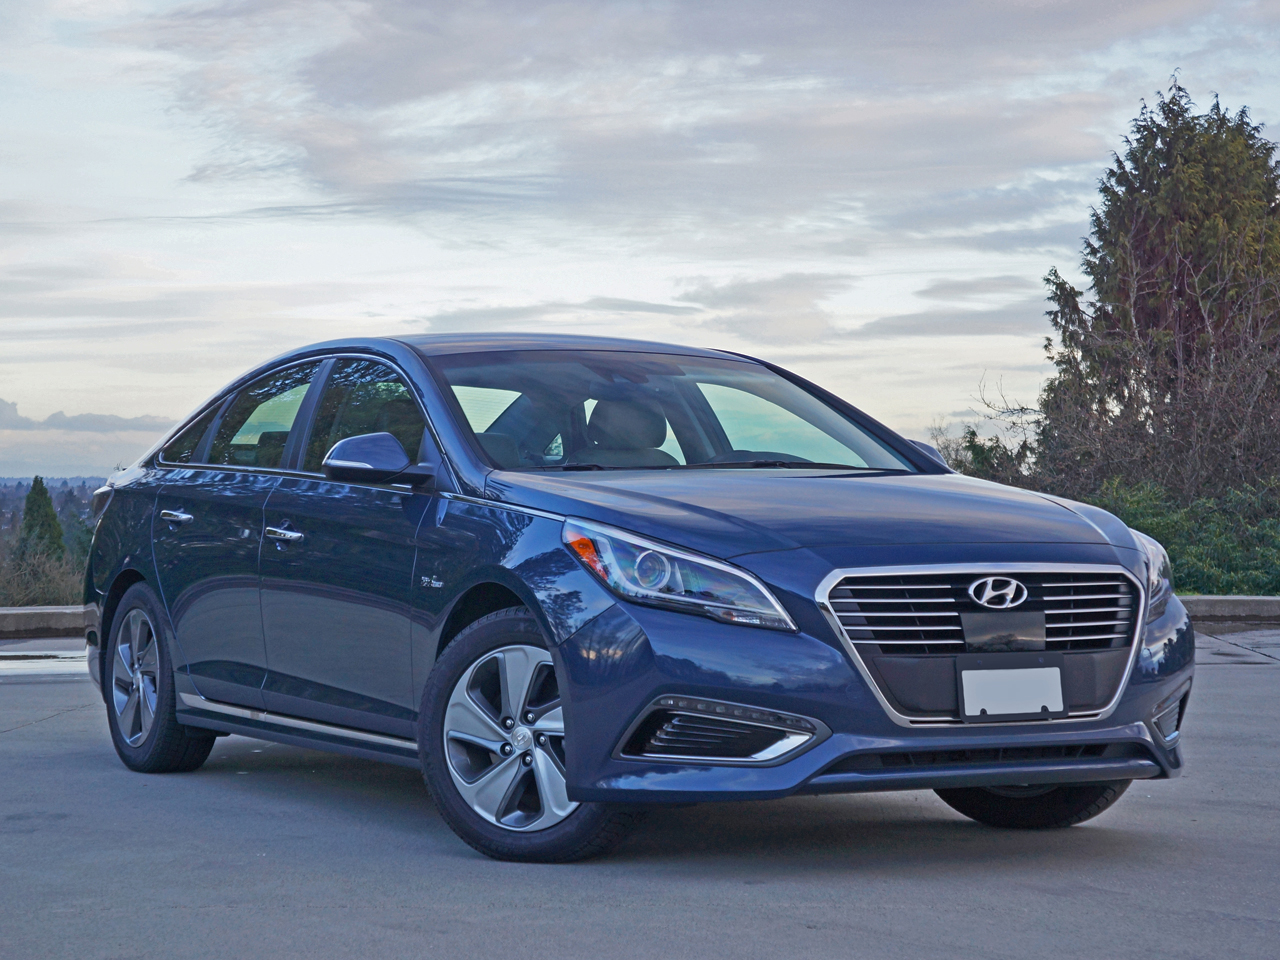 2016 Hyundai Sonata Plug-in Hybrid Ultimate Road Test Review